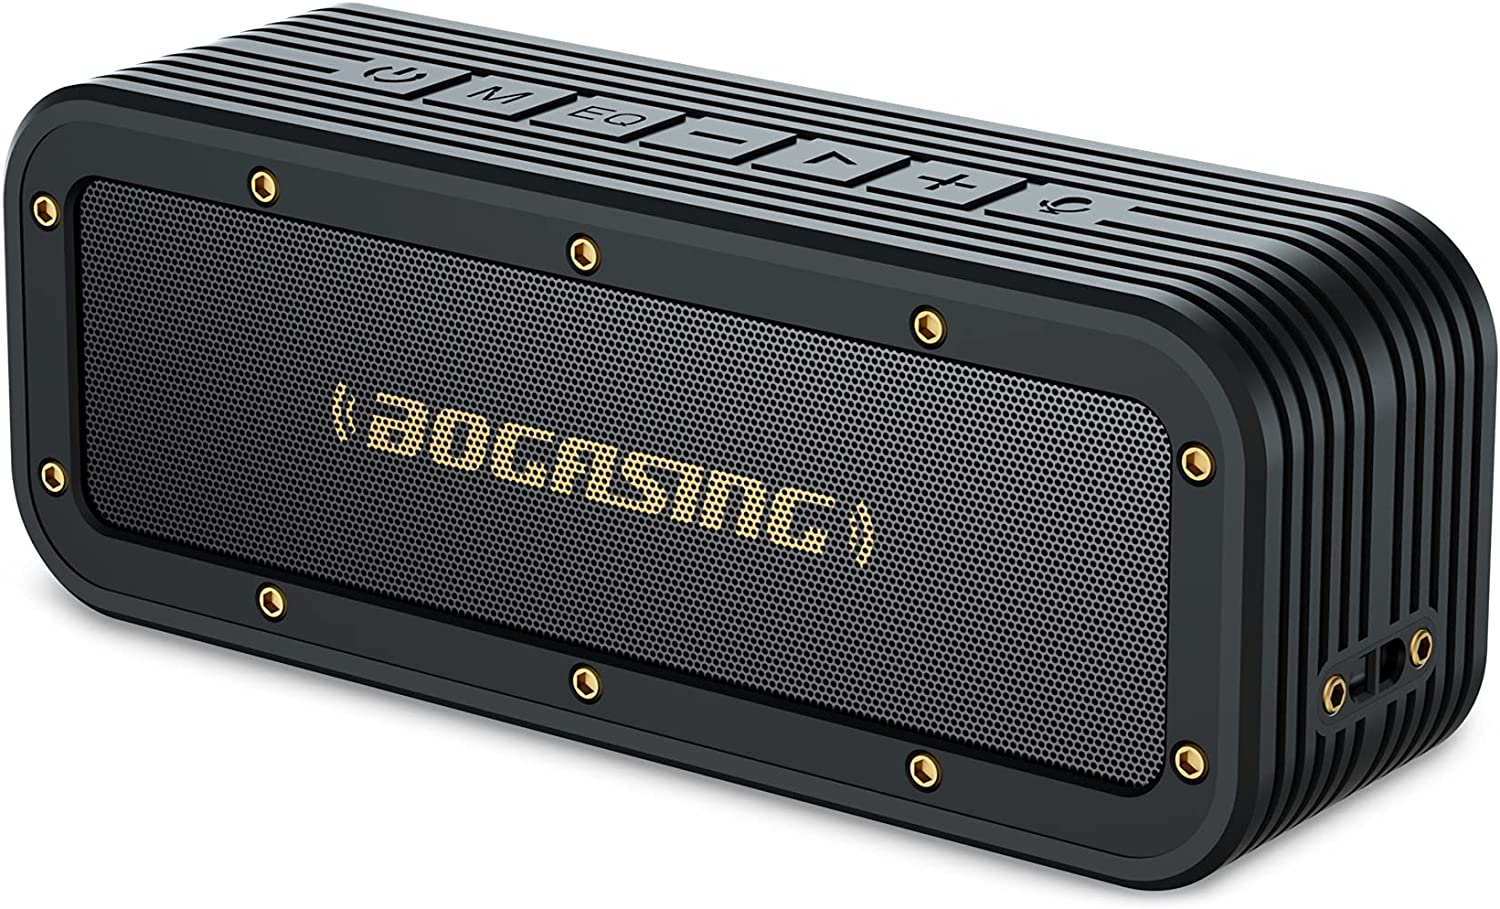 Bluetooth Speaker, BOGASING M4 Speaker with 40W Stereo HD Surround Sound, Deeper Bass, 24H Playtime, IPX7 Waterproof, Bluetooth 5.0 TWS Wireless Dual Pairing Portable Speaker for Home, Outdoor Sport